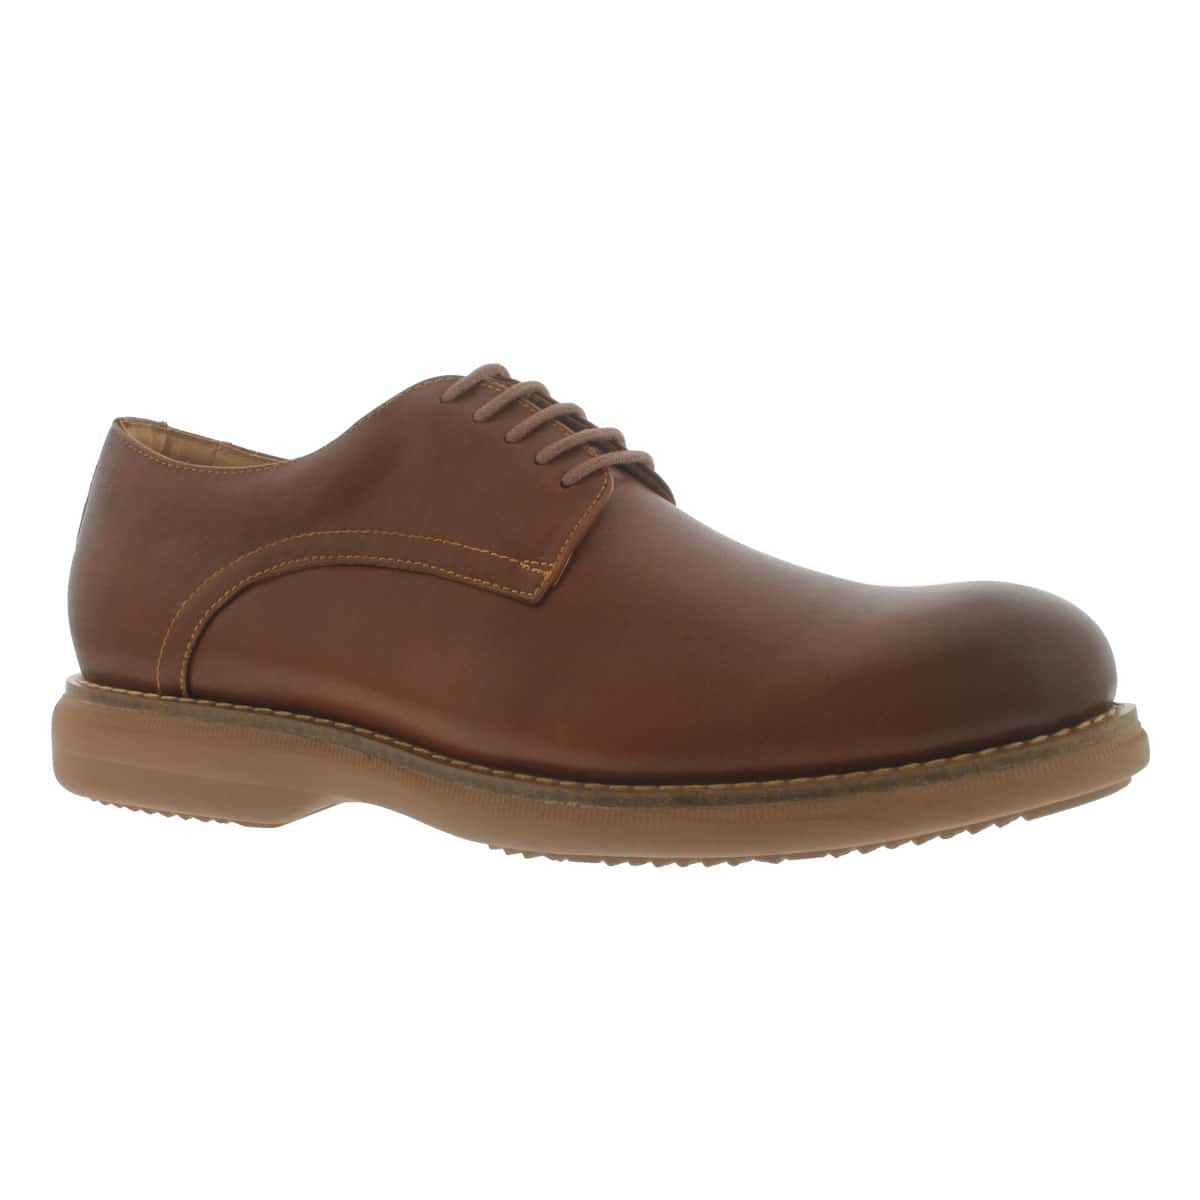 Mns Motor 5-eye cognac dress shoe